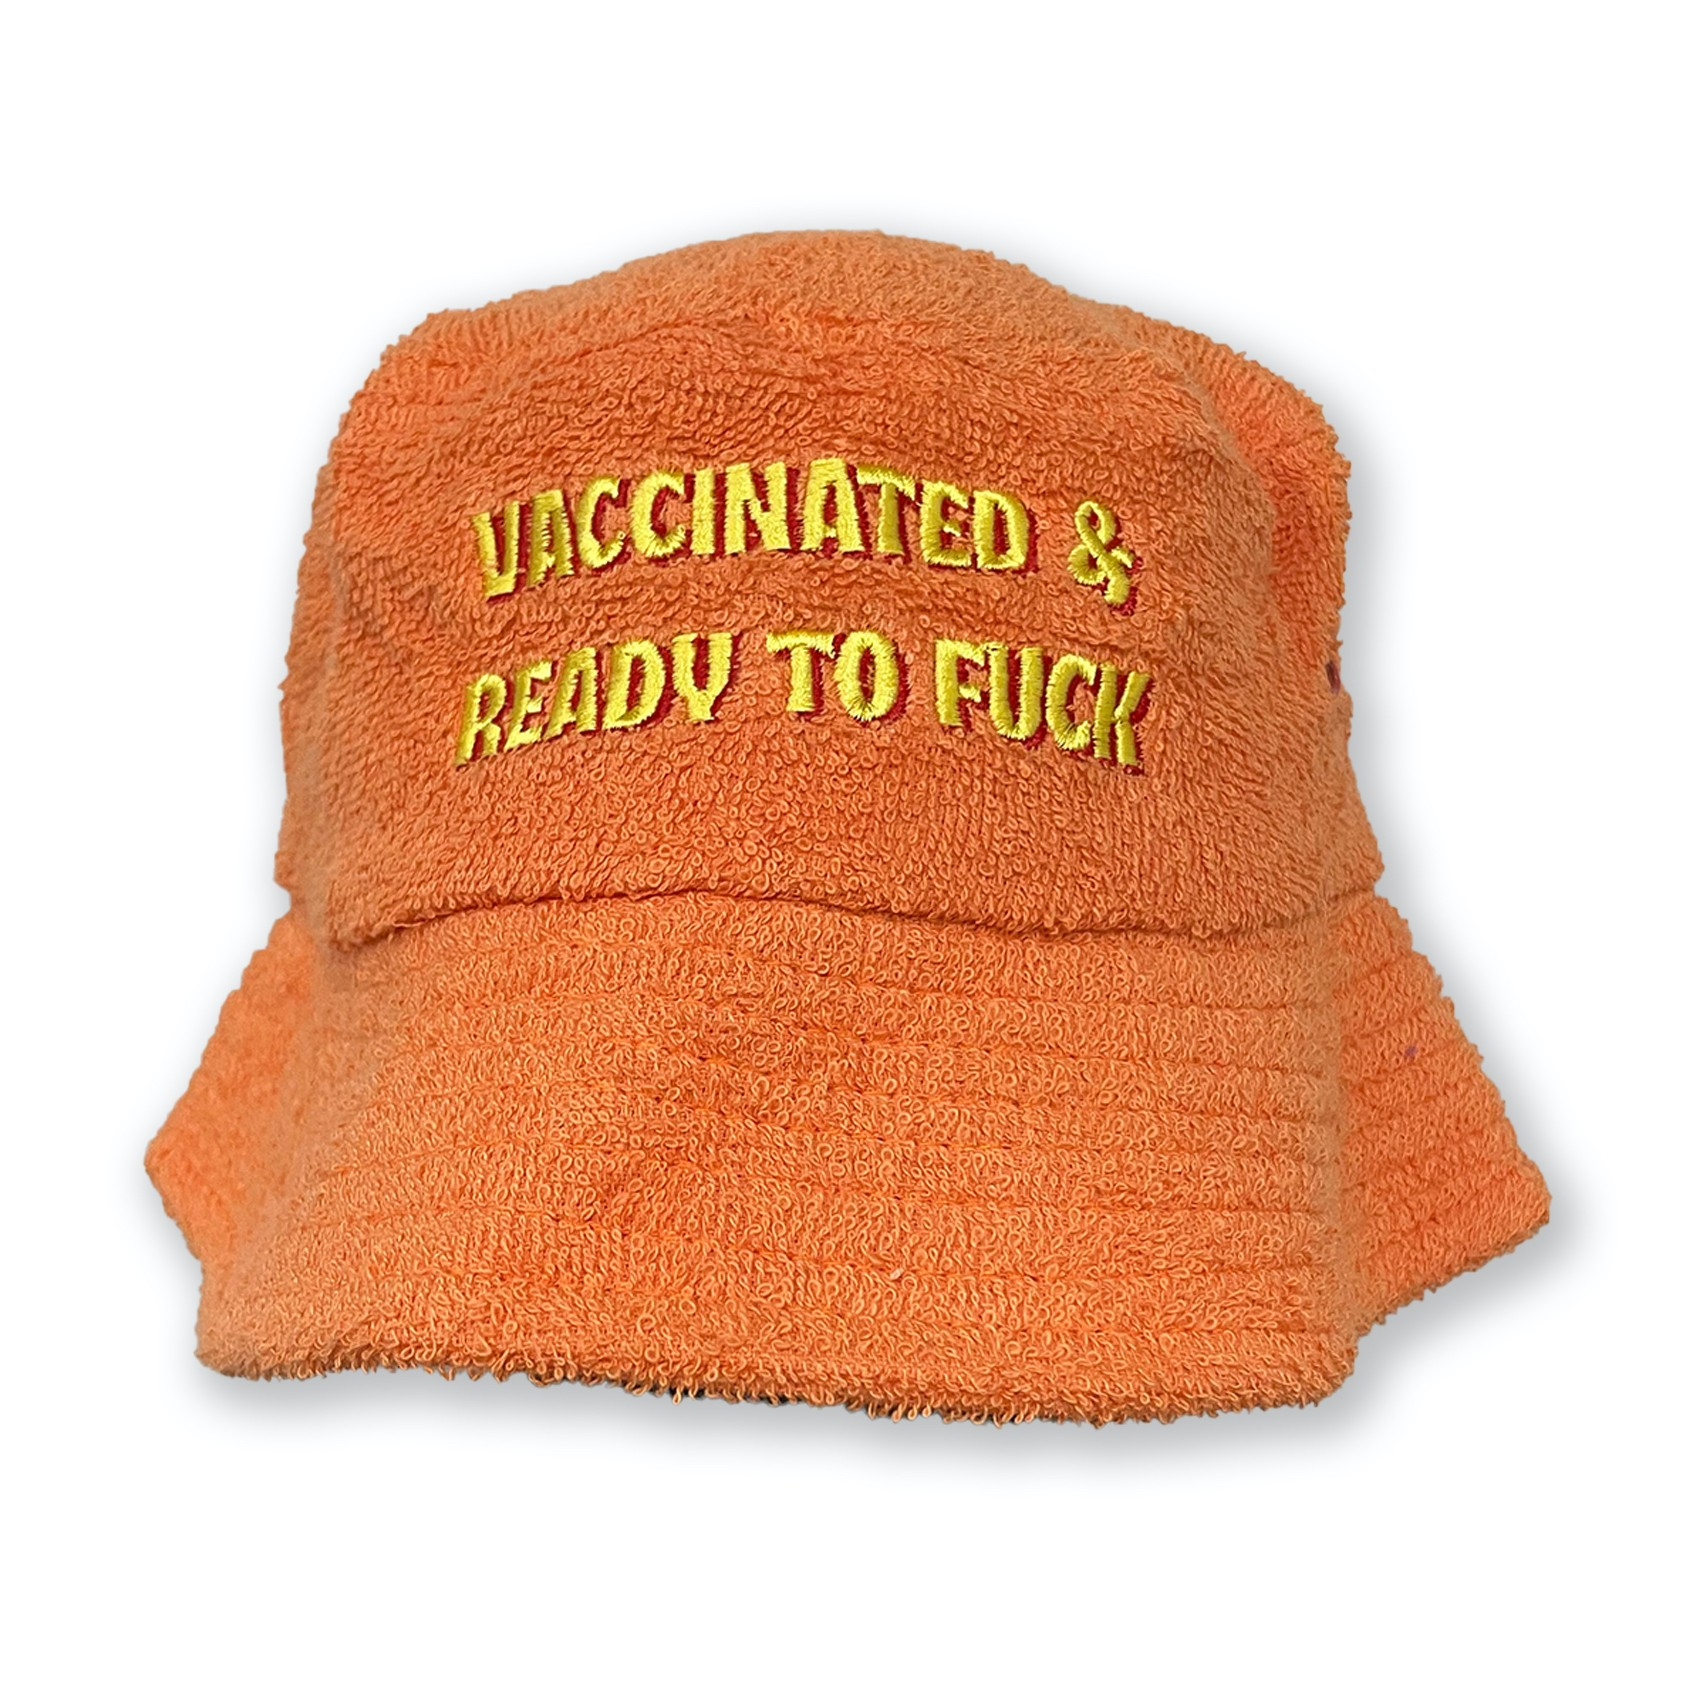 VACCINATED AND READY TERRY TOWEL BUCKET HAT